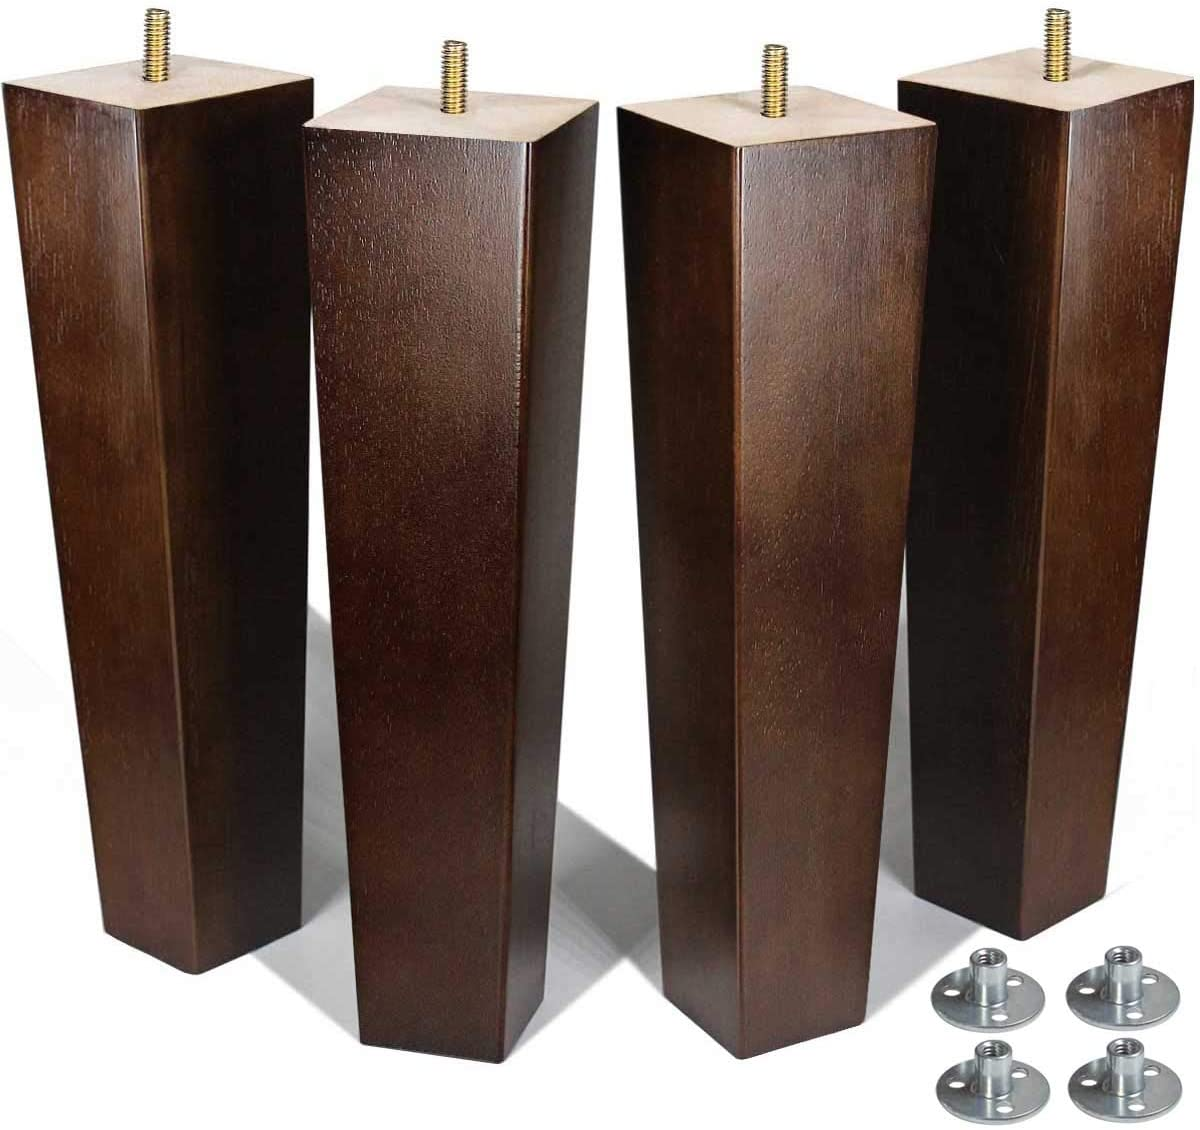 AORYVIC Furniture Legs 12 inch Wood Bench Legs Chair Legs Square Table Legs for Sofa Ottoman Brown Pack of 4